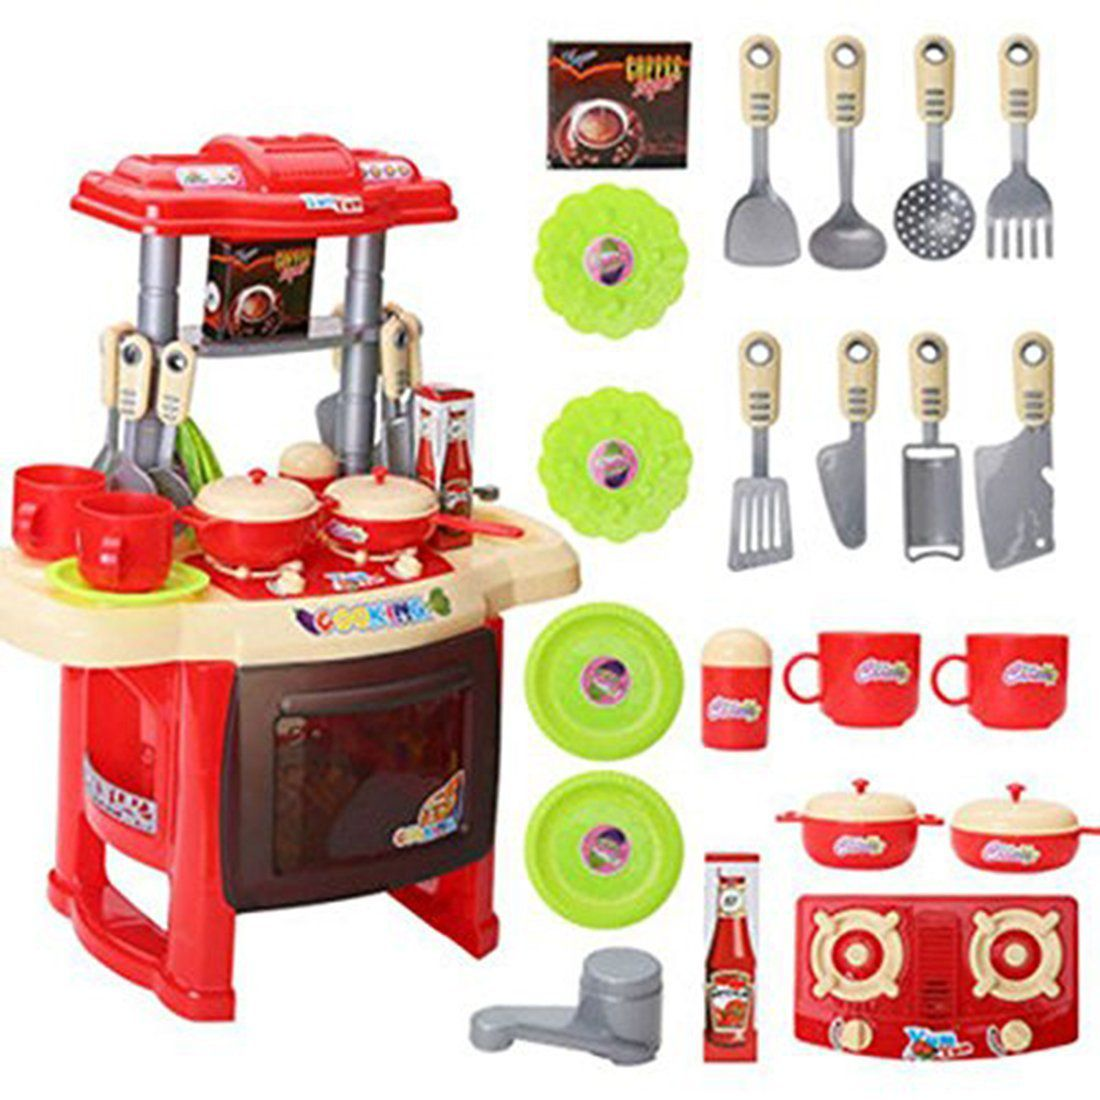 Webby kids kitchen set children kitchen toys large kitchen for Kitchen set for babies